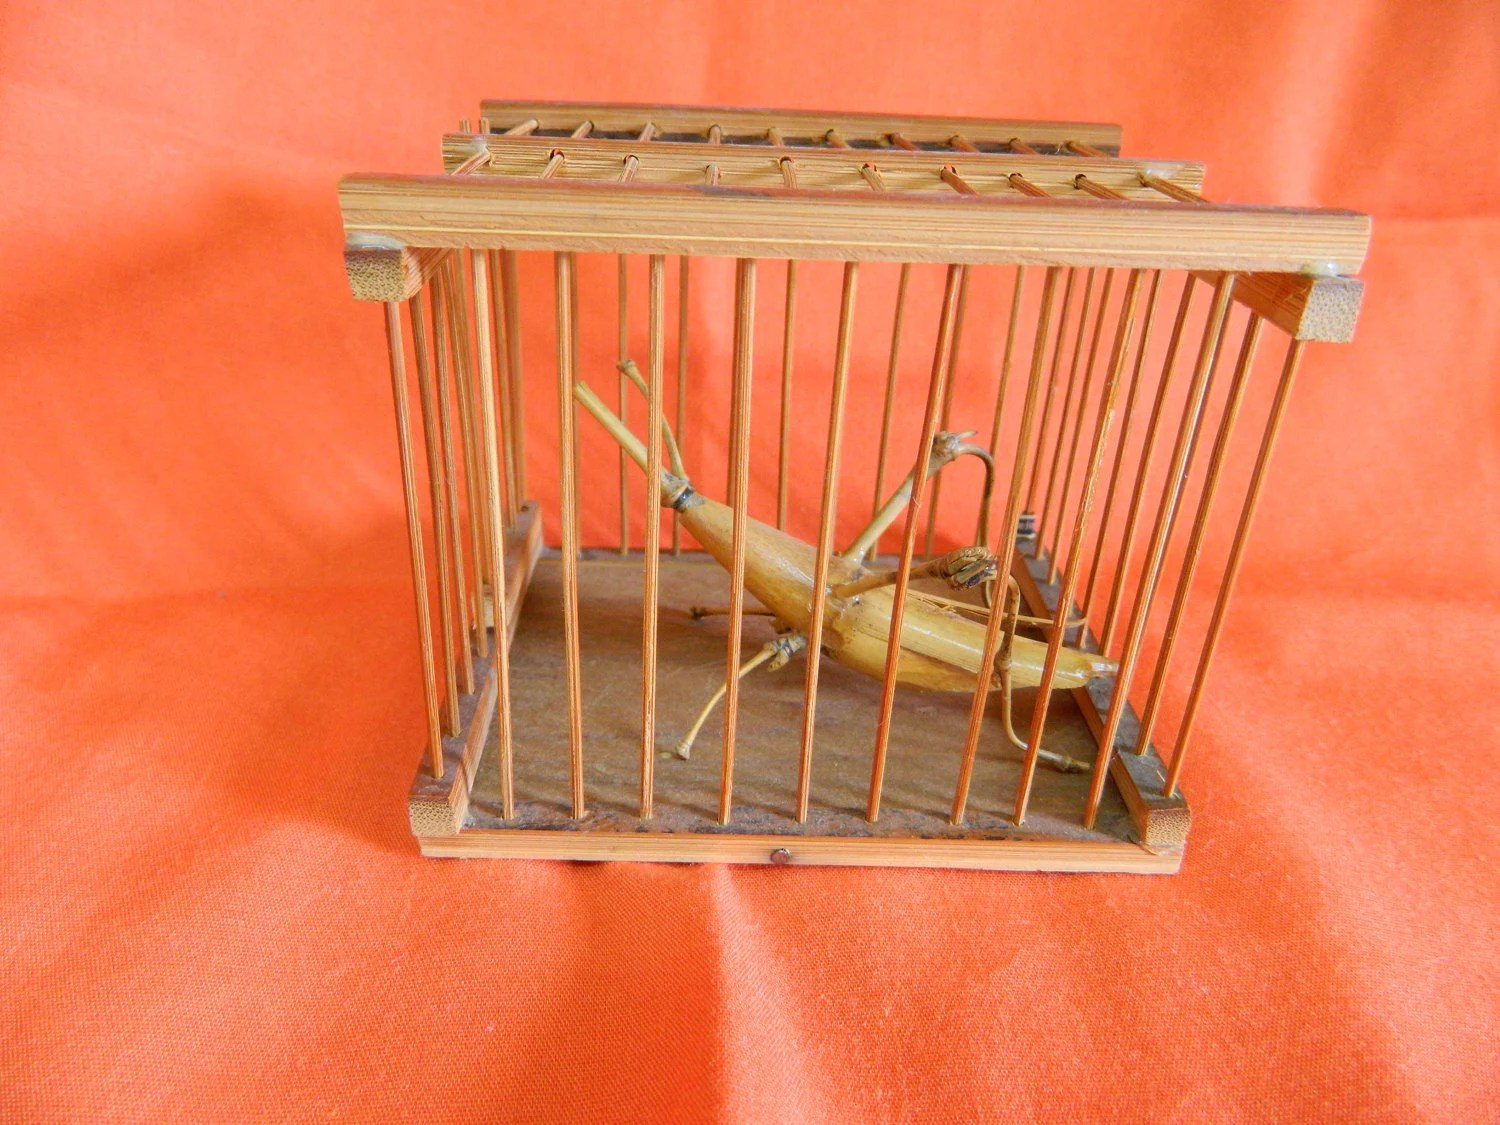 Le Meilleur On Sale Bamboo Cricket Cage Japanese Good Fortune Symbol Ce Mois Ci